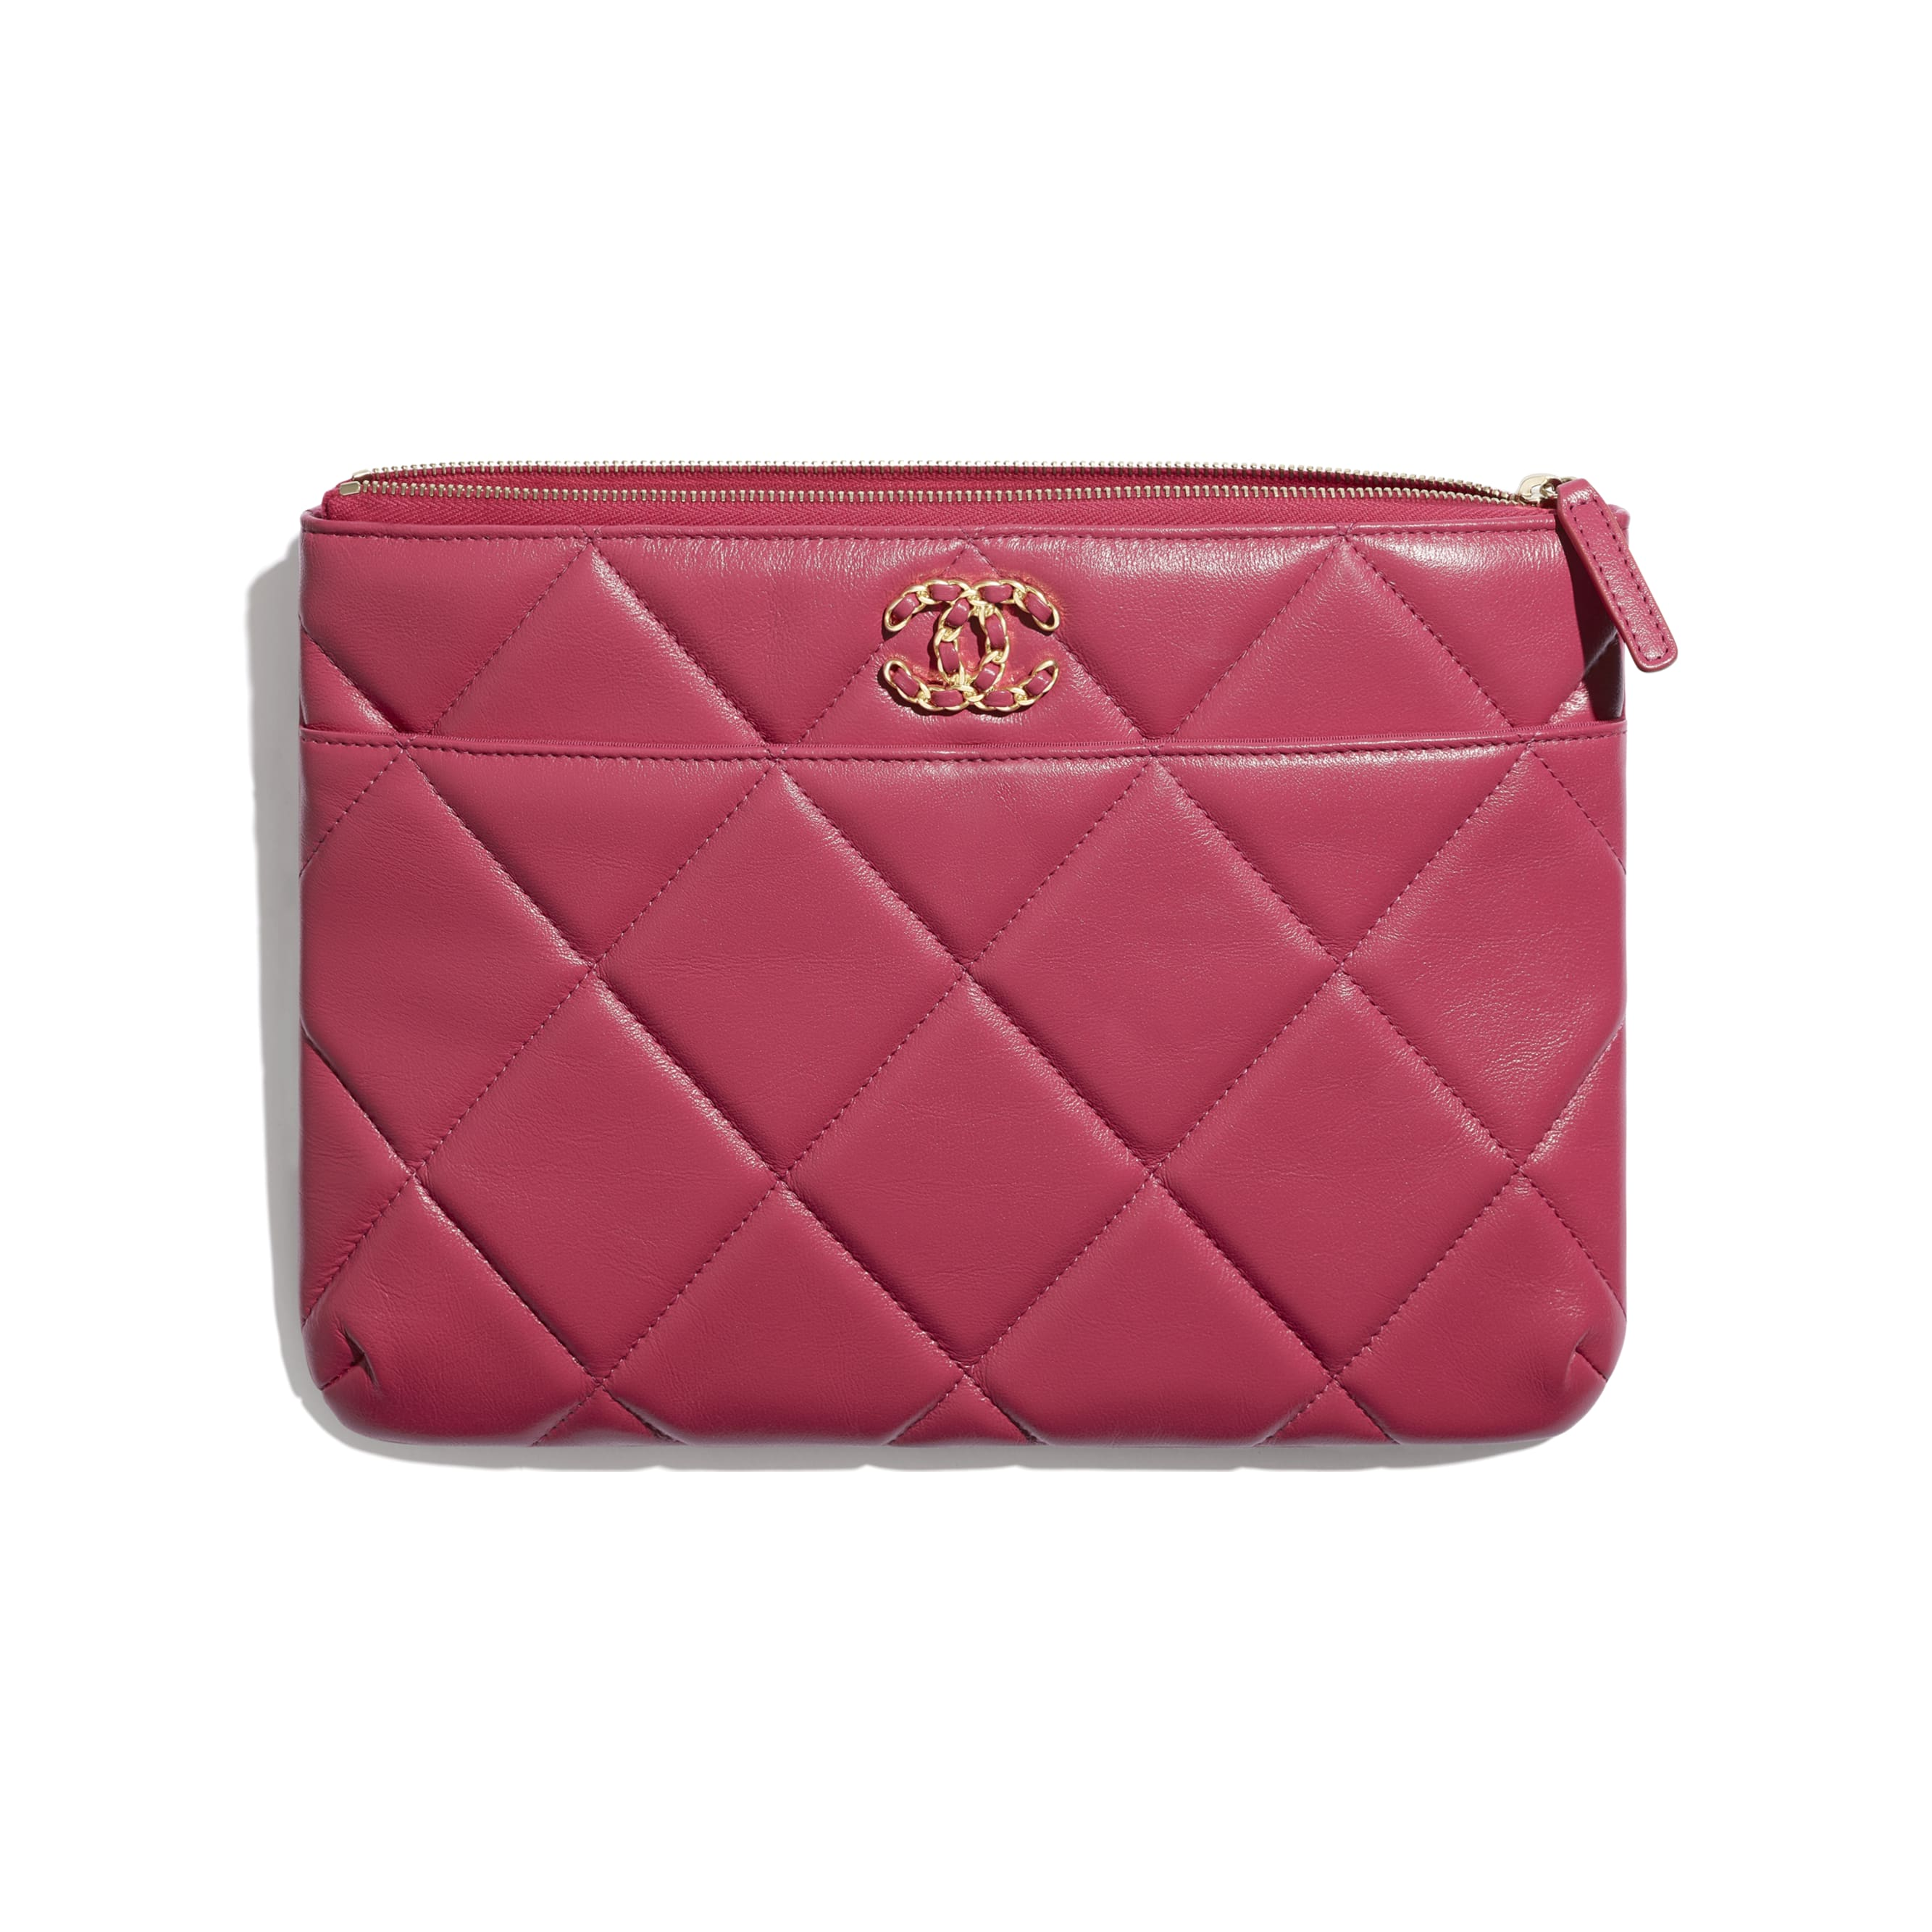 CHANEL 19 Pouch - Dark Pink - Lambskin, Gold-Tone, Silver-Tone & Ruthenium-Finish Metal - CHANEL - Other view - see standard sized version